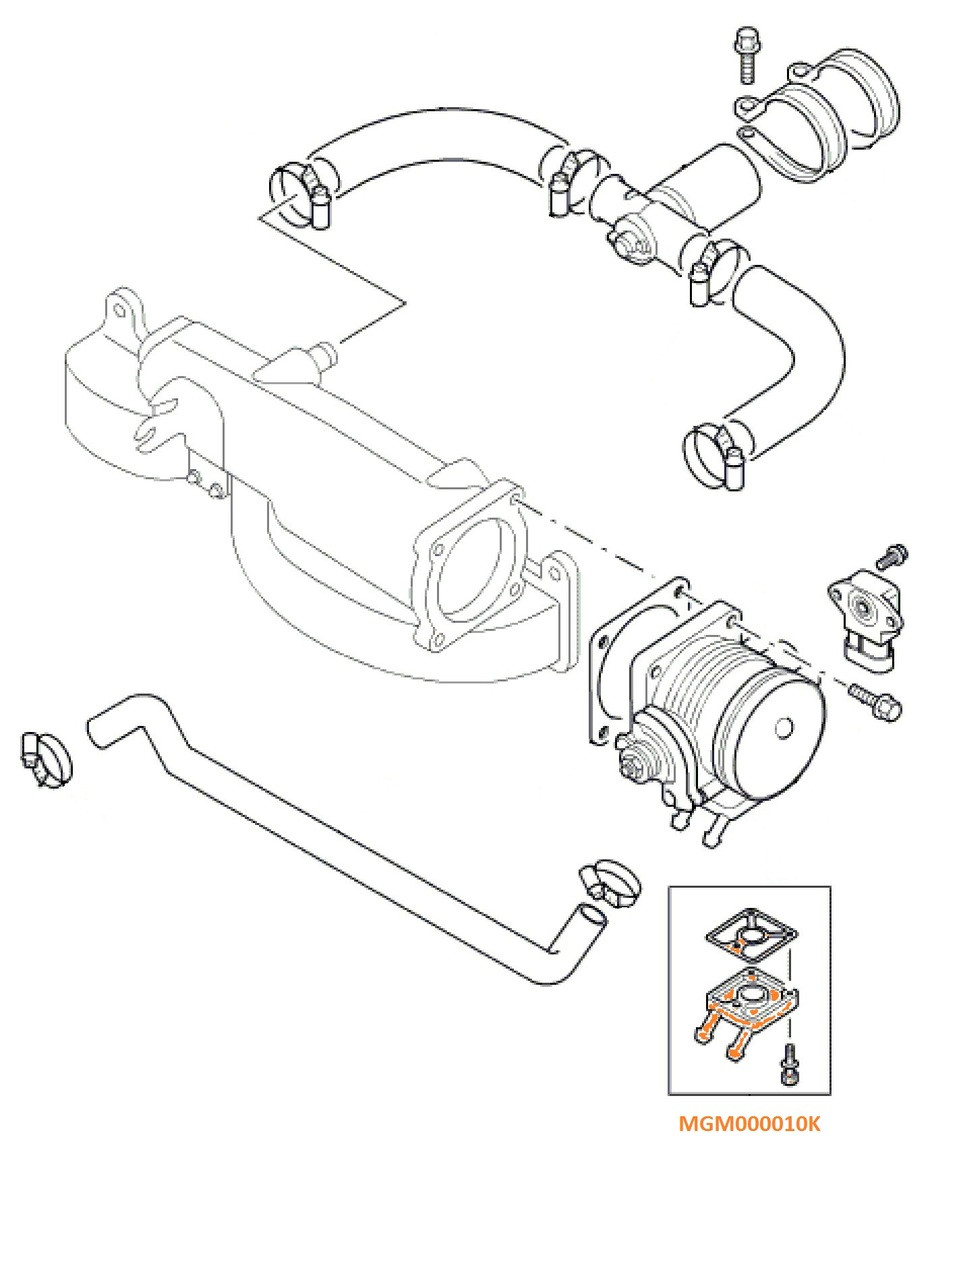 Land Rover Discovery II Range Rover Throttle Body Flange Repair Kit Allmakes 4x4